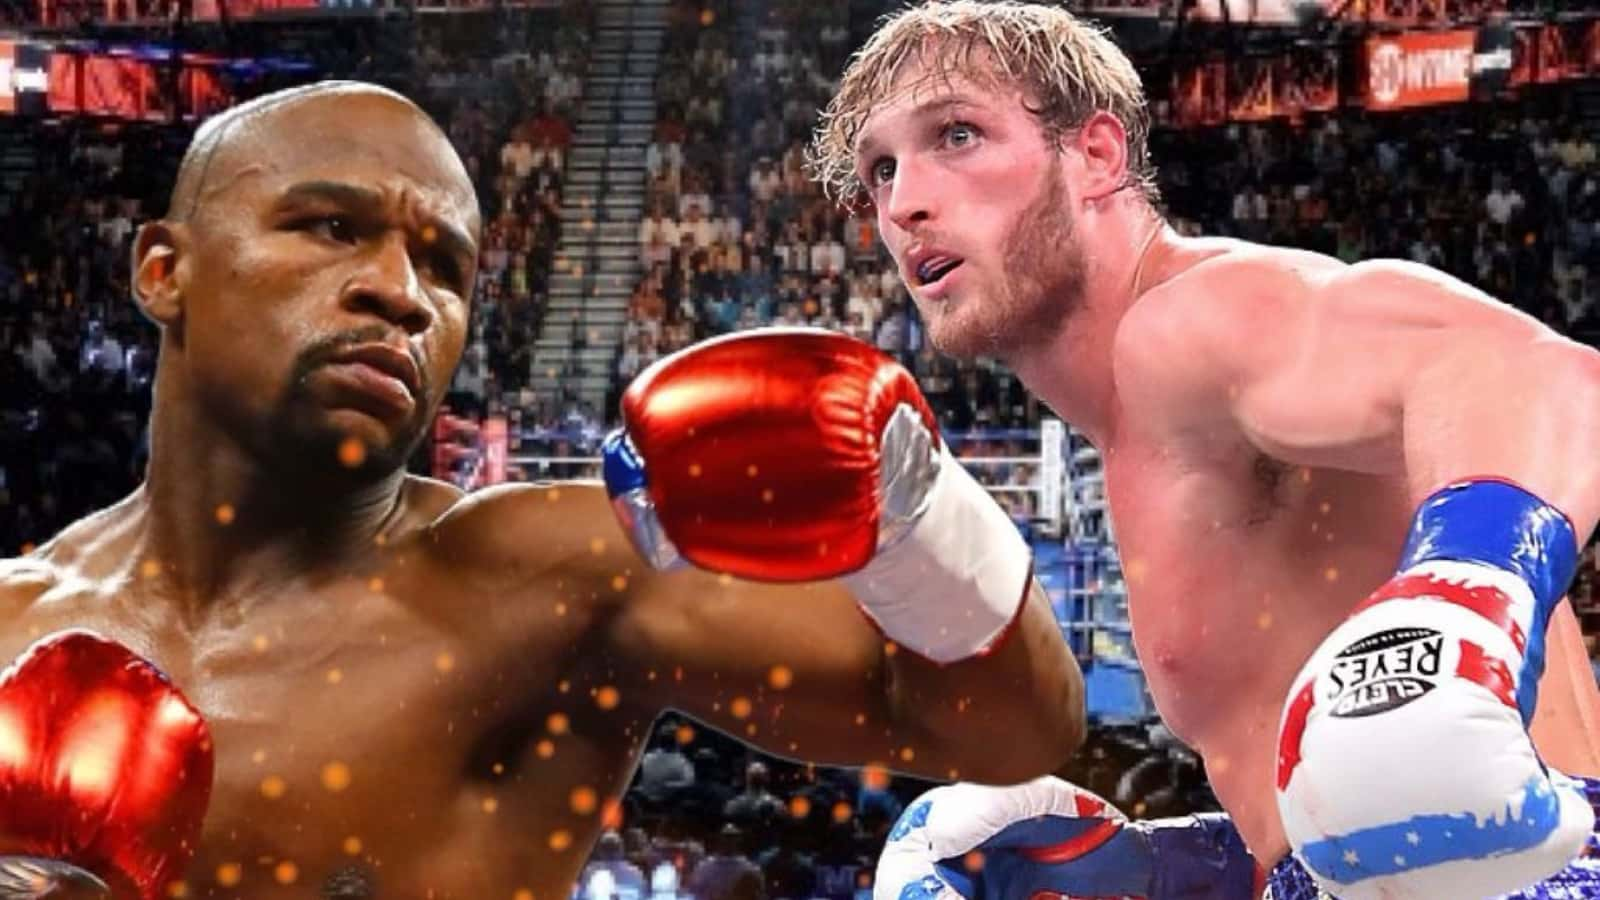 Mayweather retired and just waited for the chance to hit some of the gigs like an upcoming match with Logan Paul in an attempt to make more money.